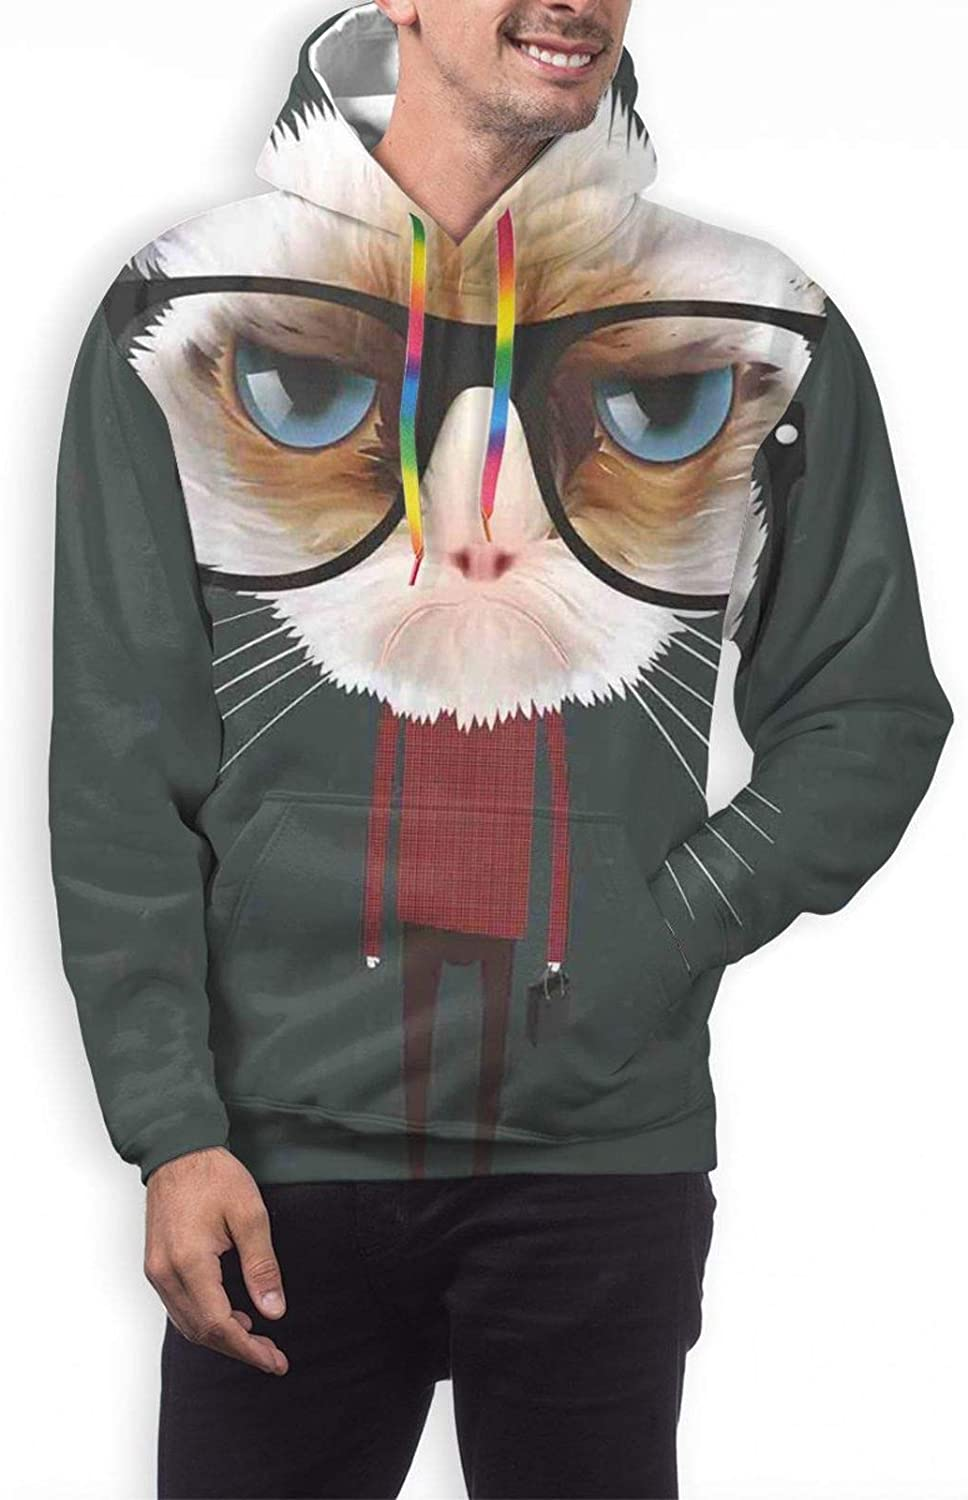 Men's Hoodies Sweatshirts,Hipster Feline with Giant Head Plaid Shirt and Greyscale Background Funny Illustration